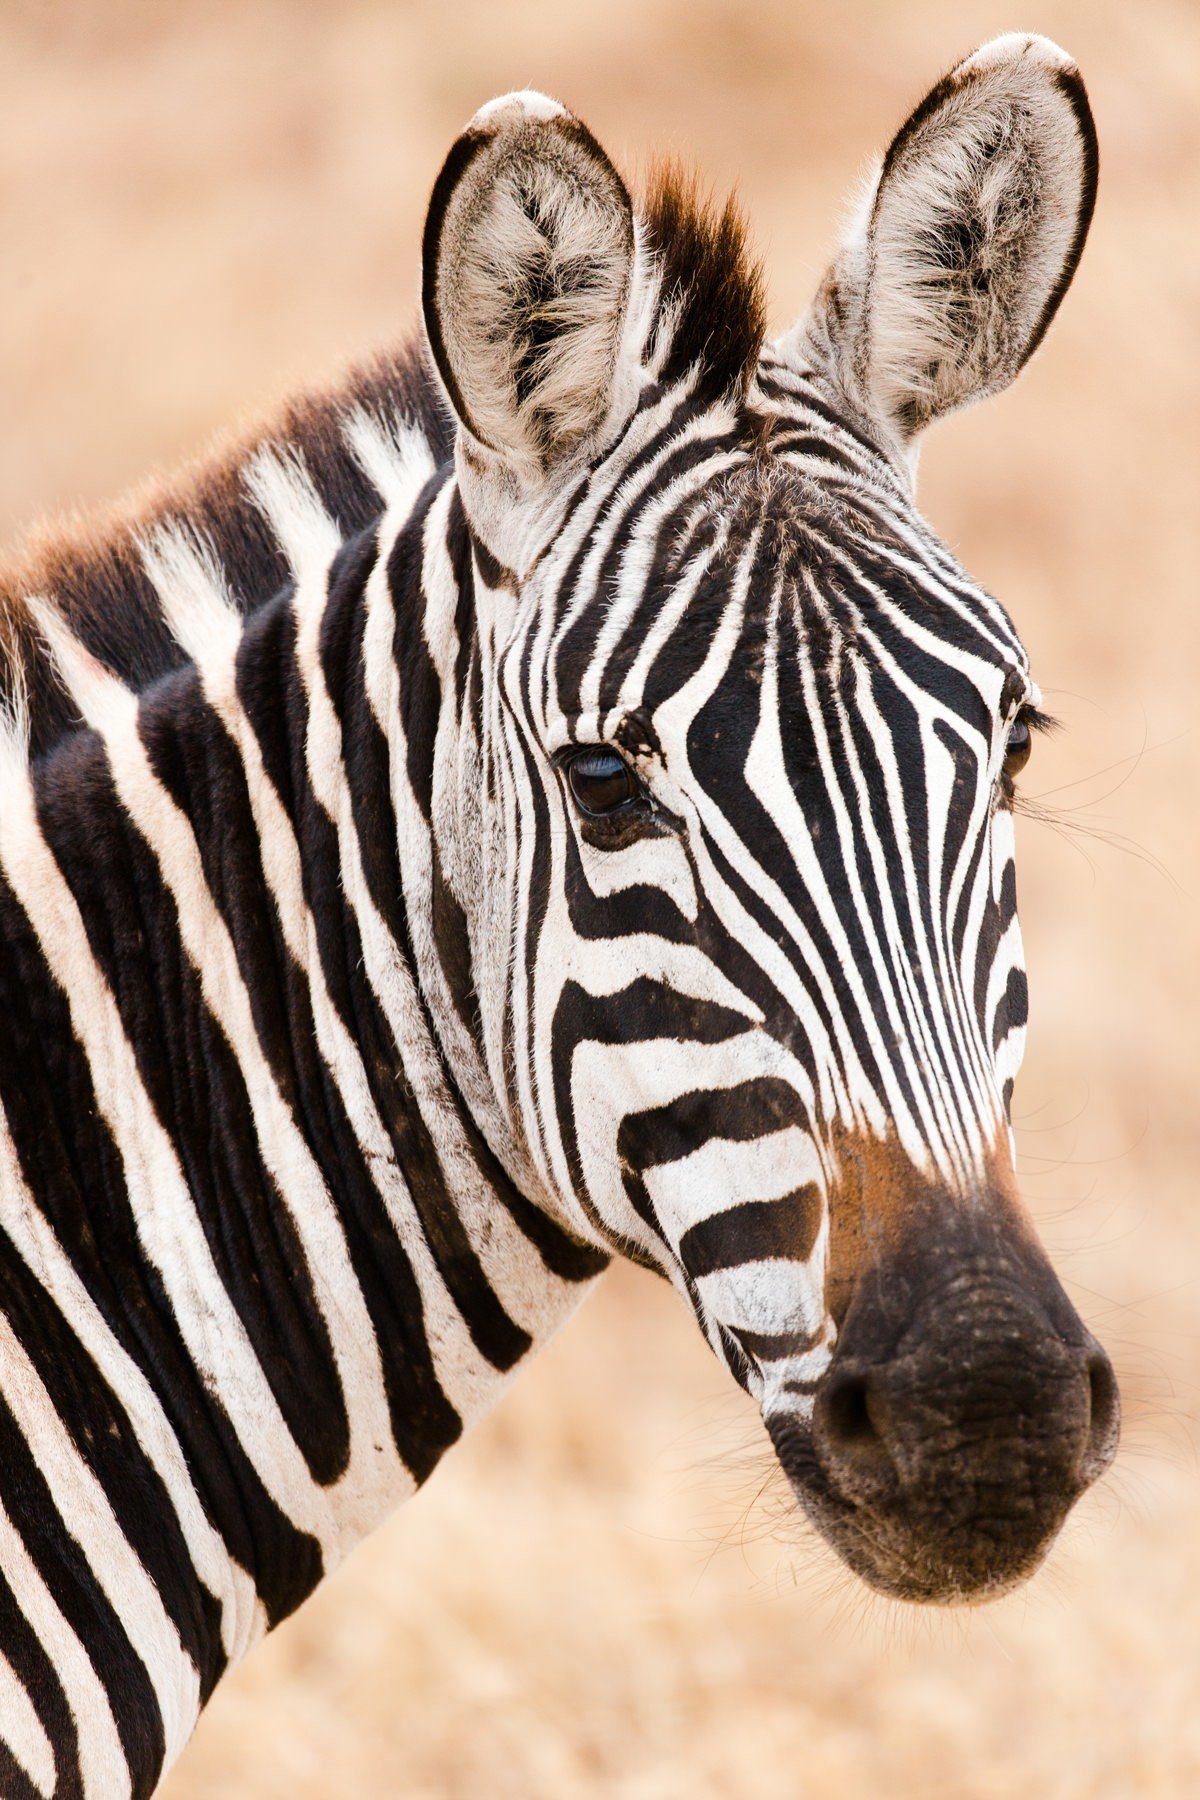 cameron-zegers-travel-photographer-tanzania-animal-zebra-portrait